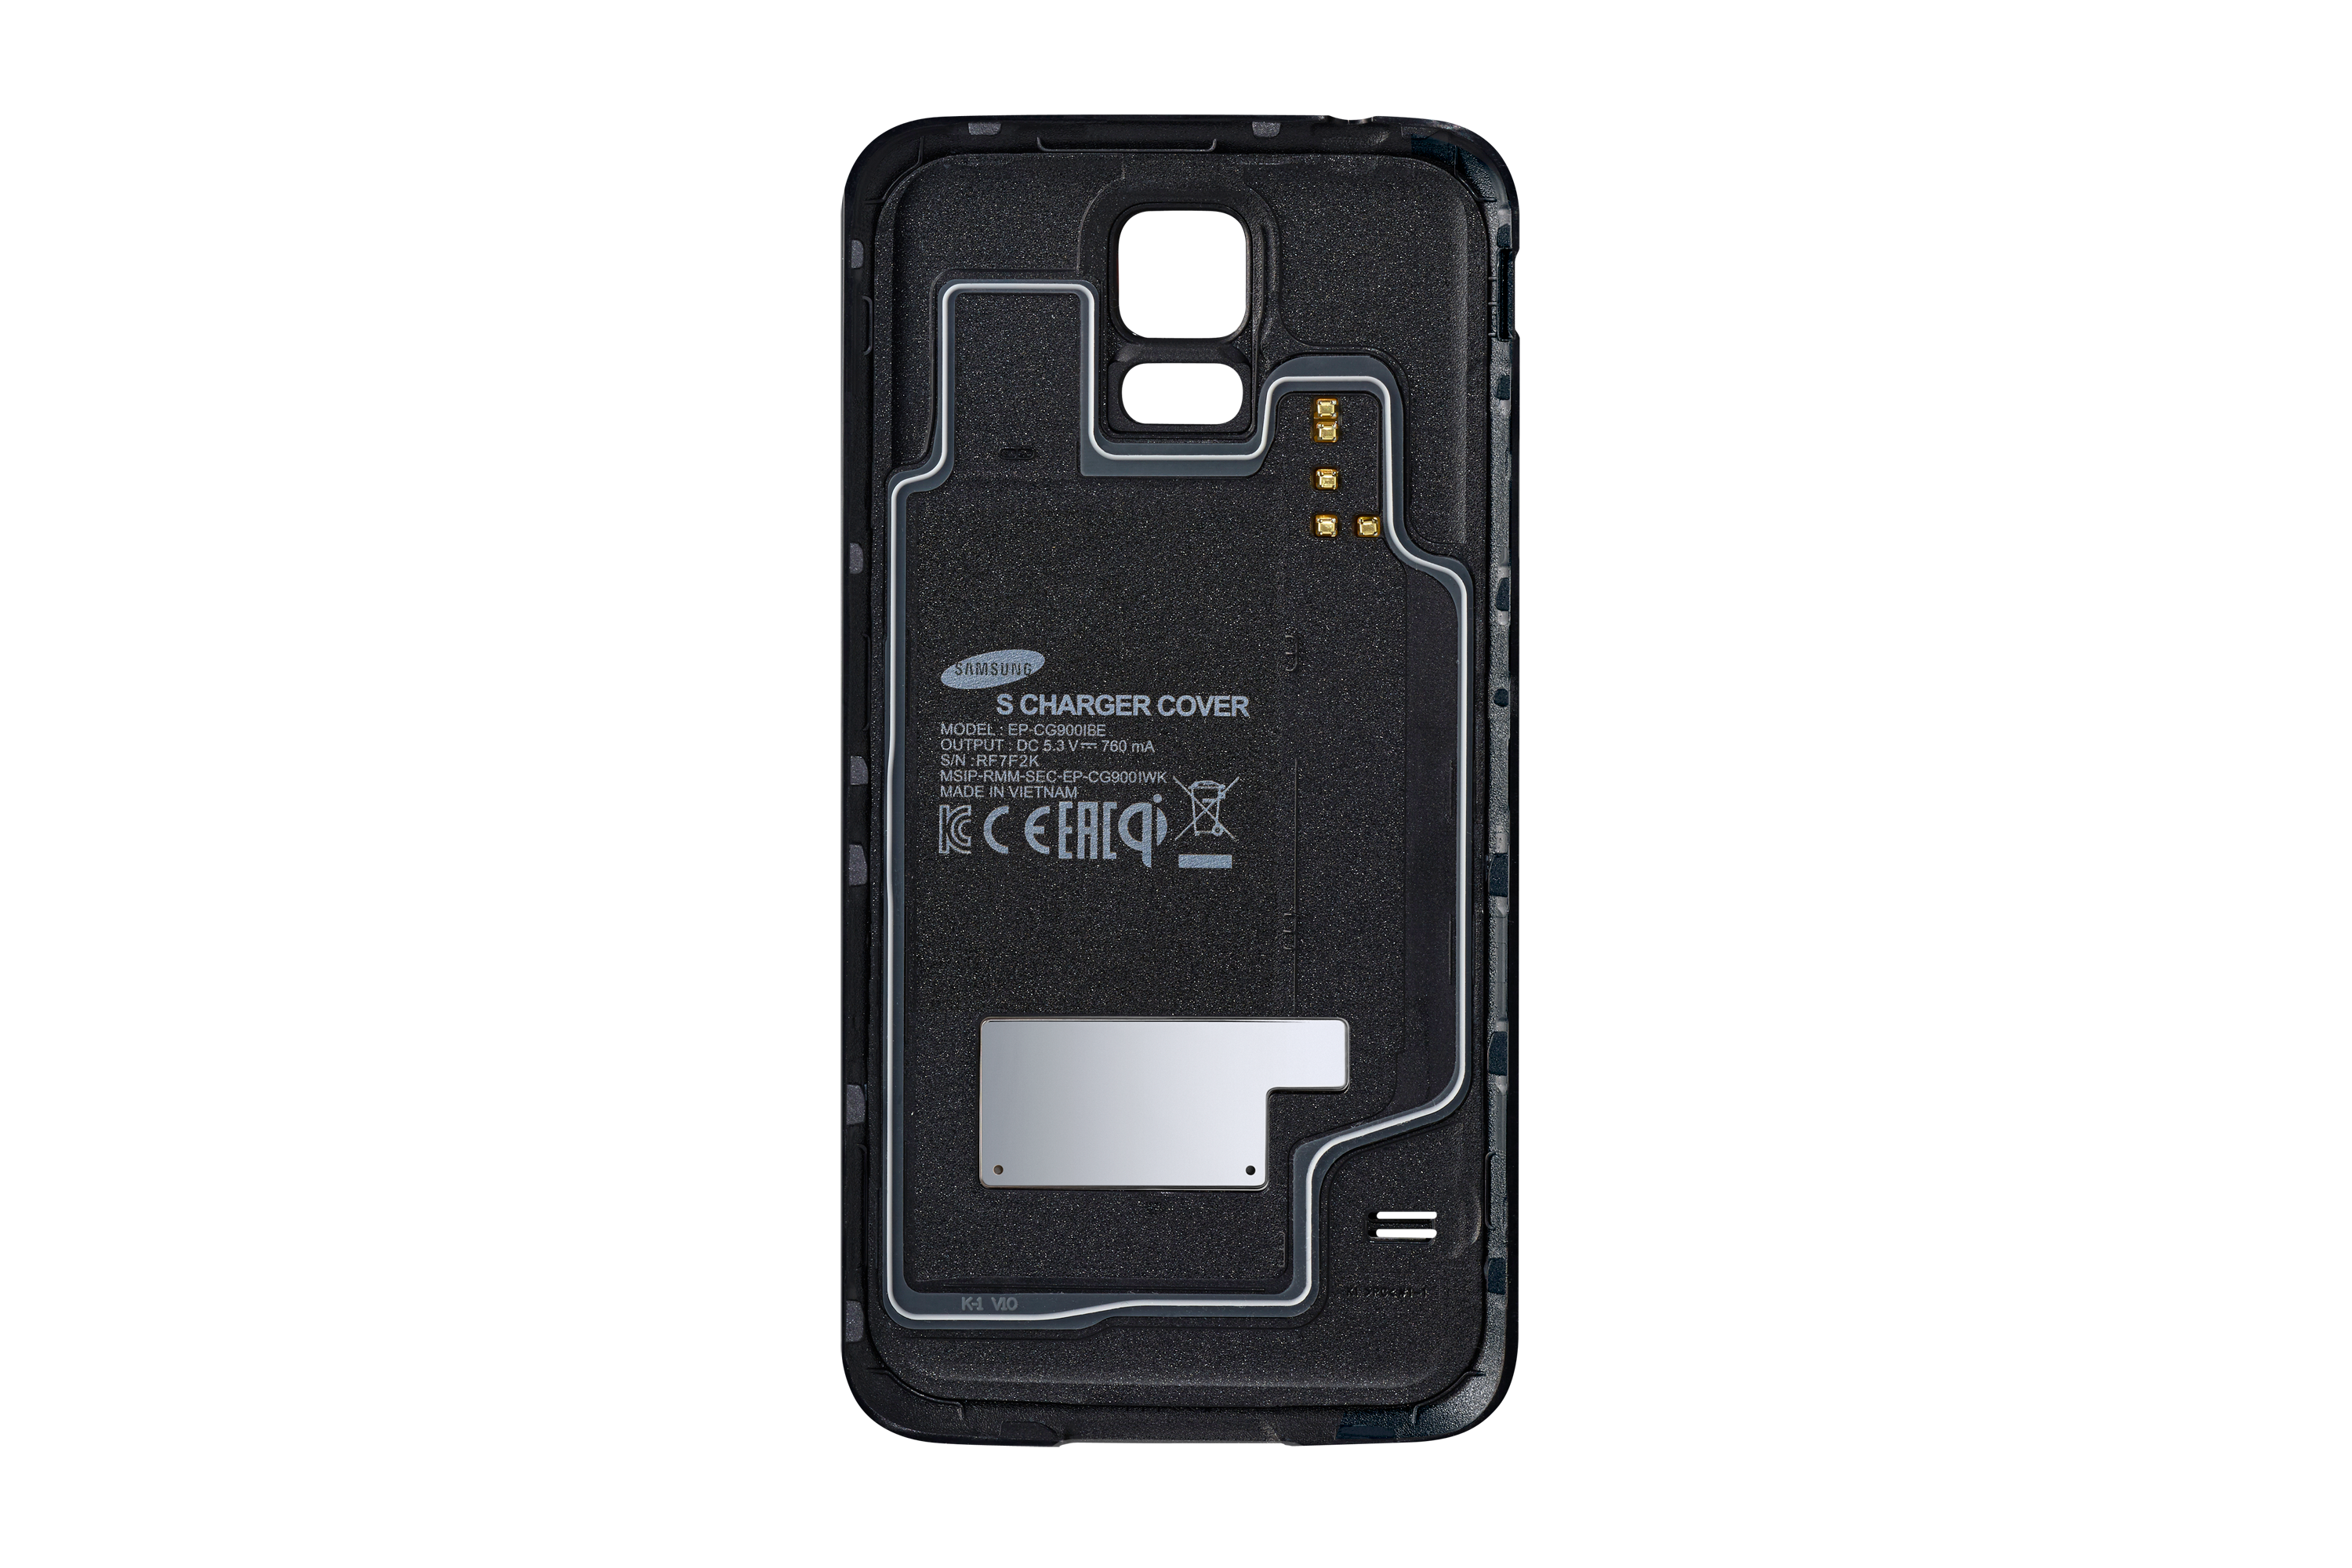 Wireless Charging Cover Galaxy S5